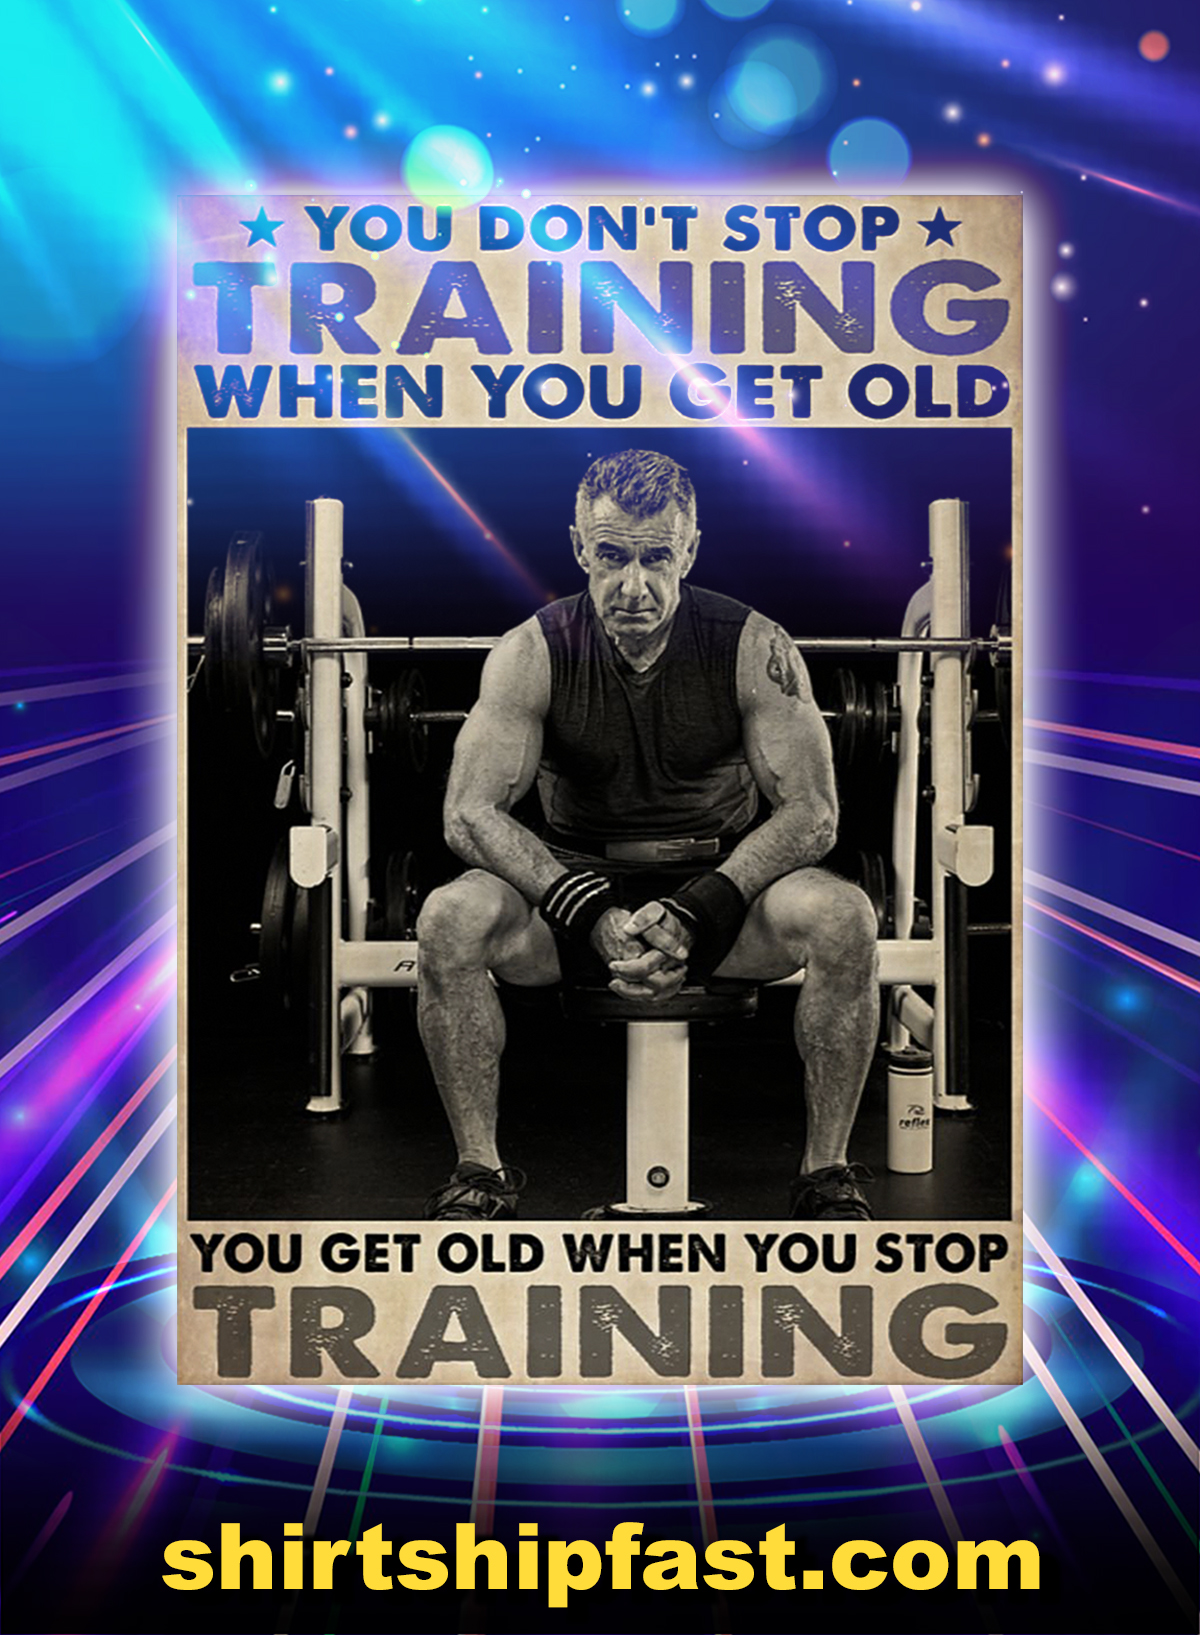 Old man bodybuilding you don't stop training when you get old poster - A1